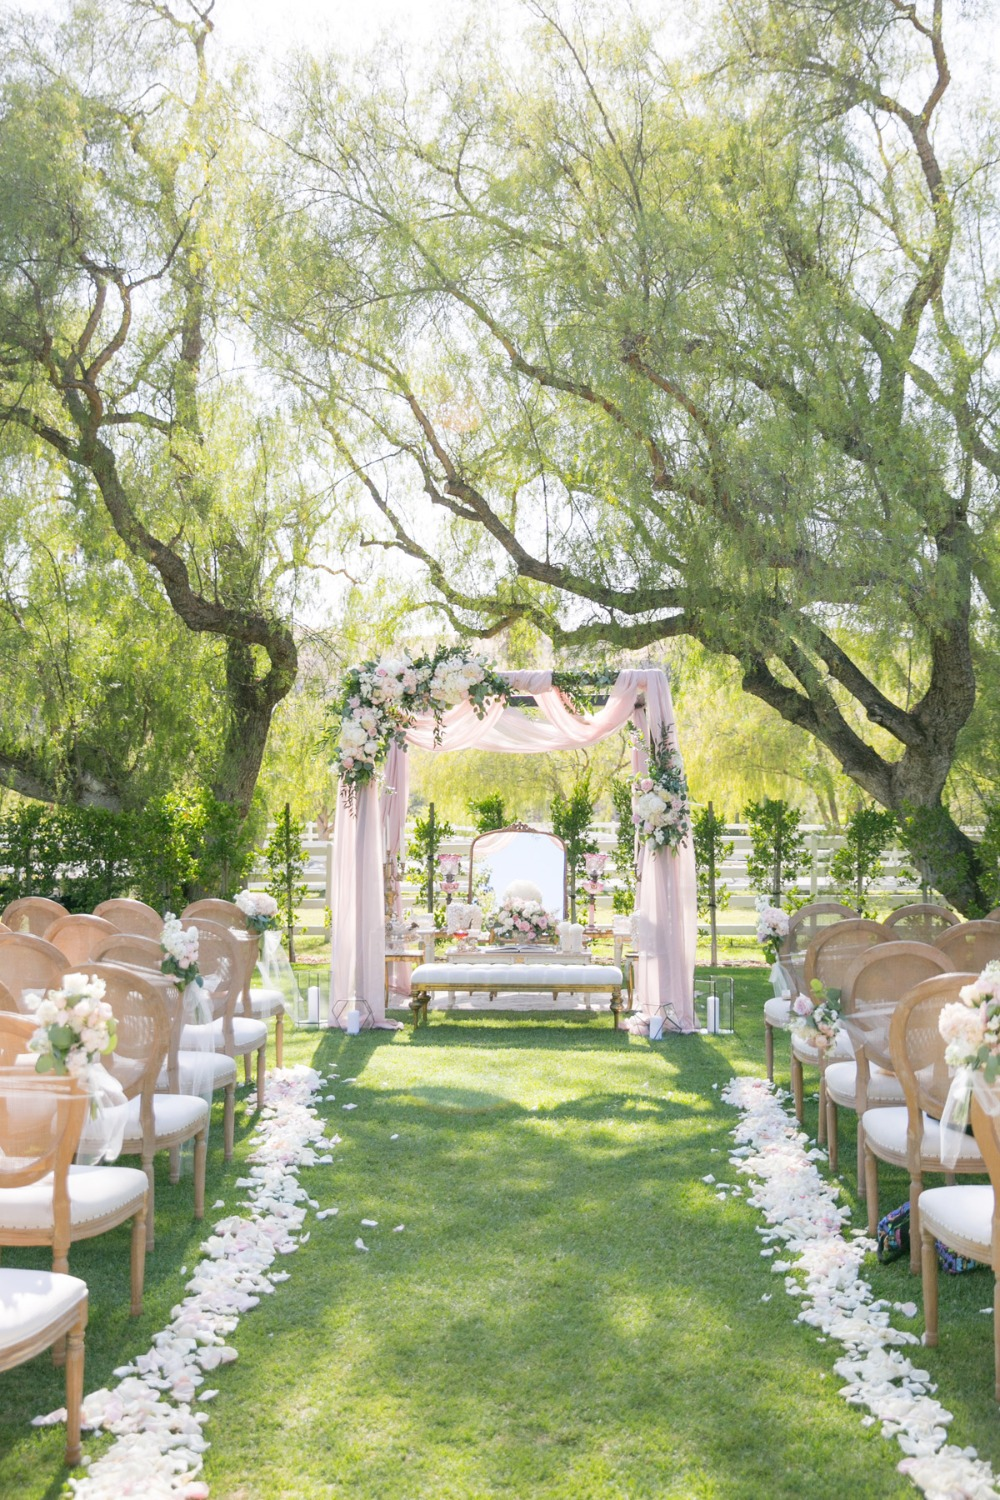 wedding ceremony decor in pink and white